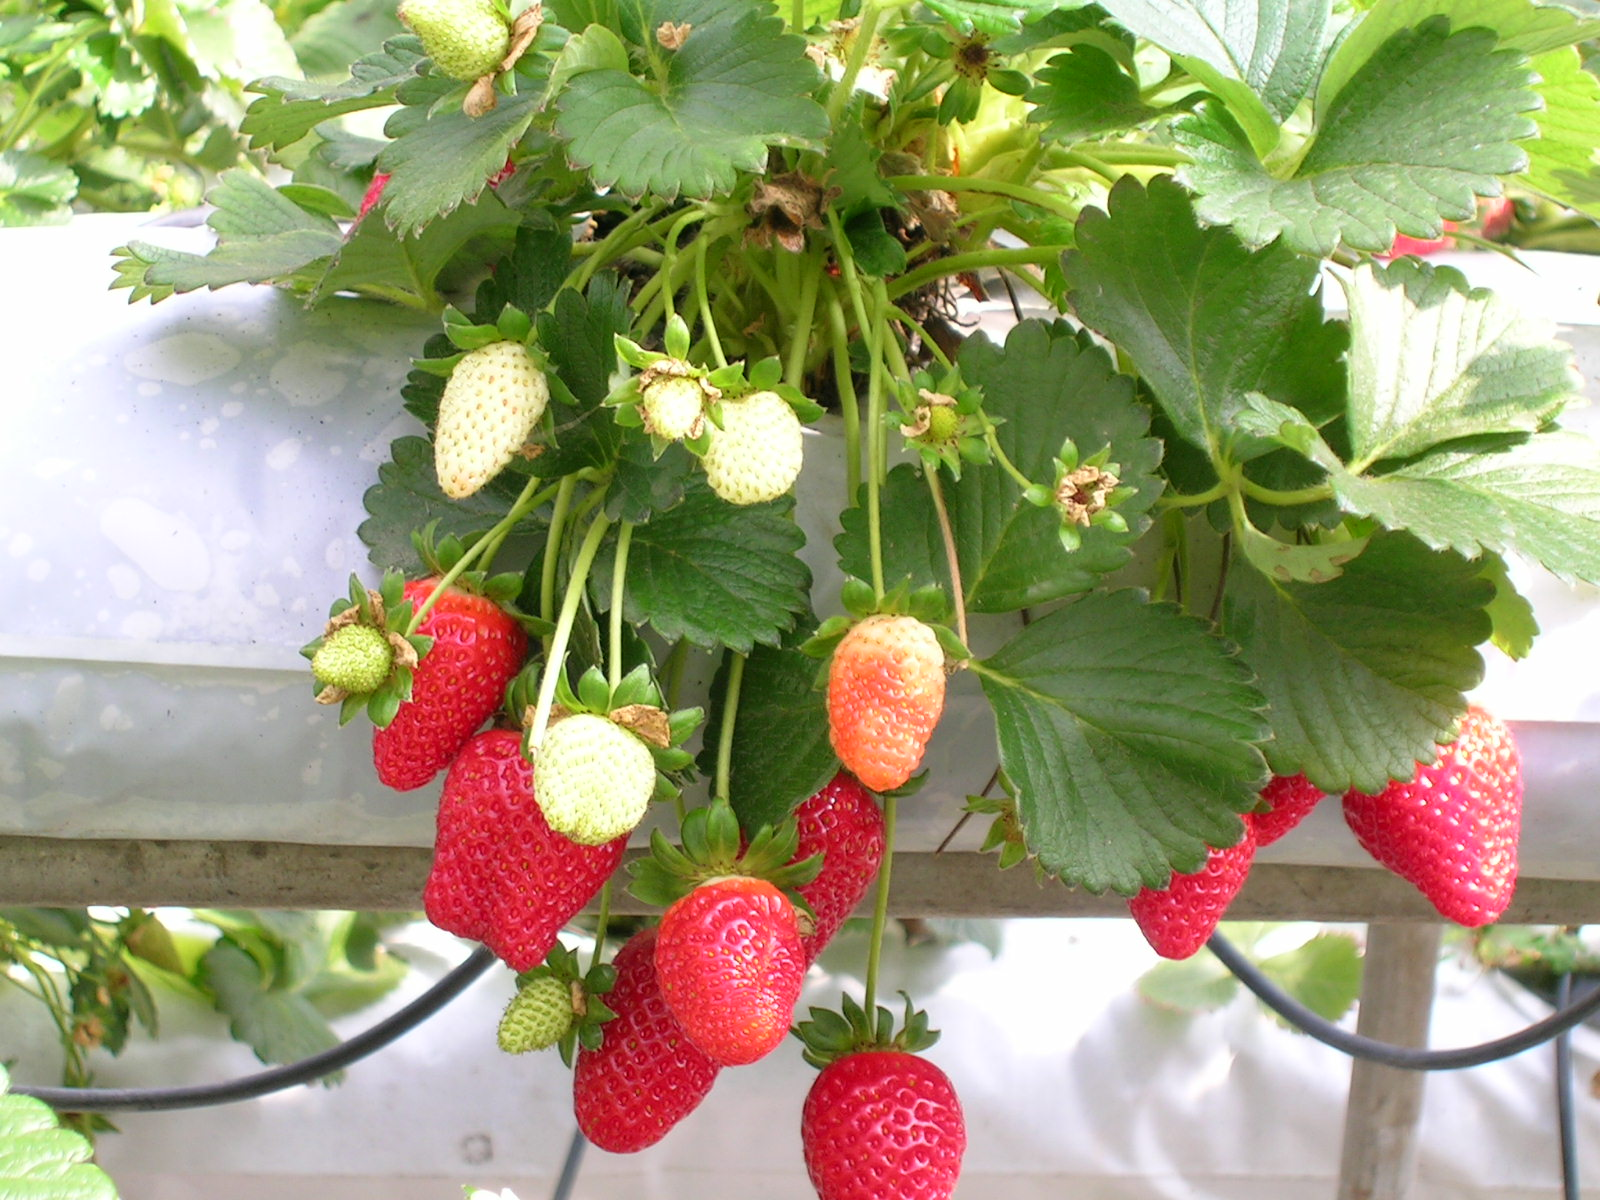 https://i1.wp.com/3.bp.blogspot.com/-QLeWZTNJny0/TdYmxIklvWI/AAAAAAAAAIc/VBOLwEdAy3E/s1600/Strawberries.jpg